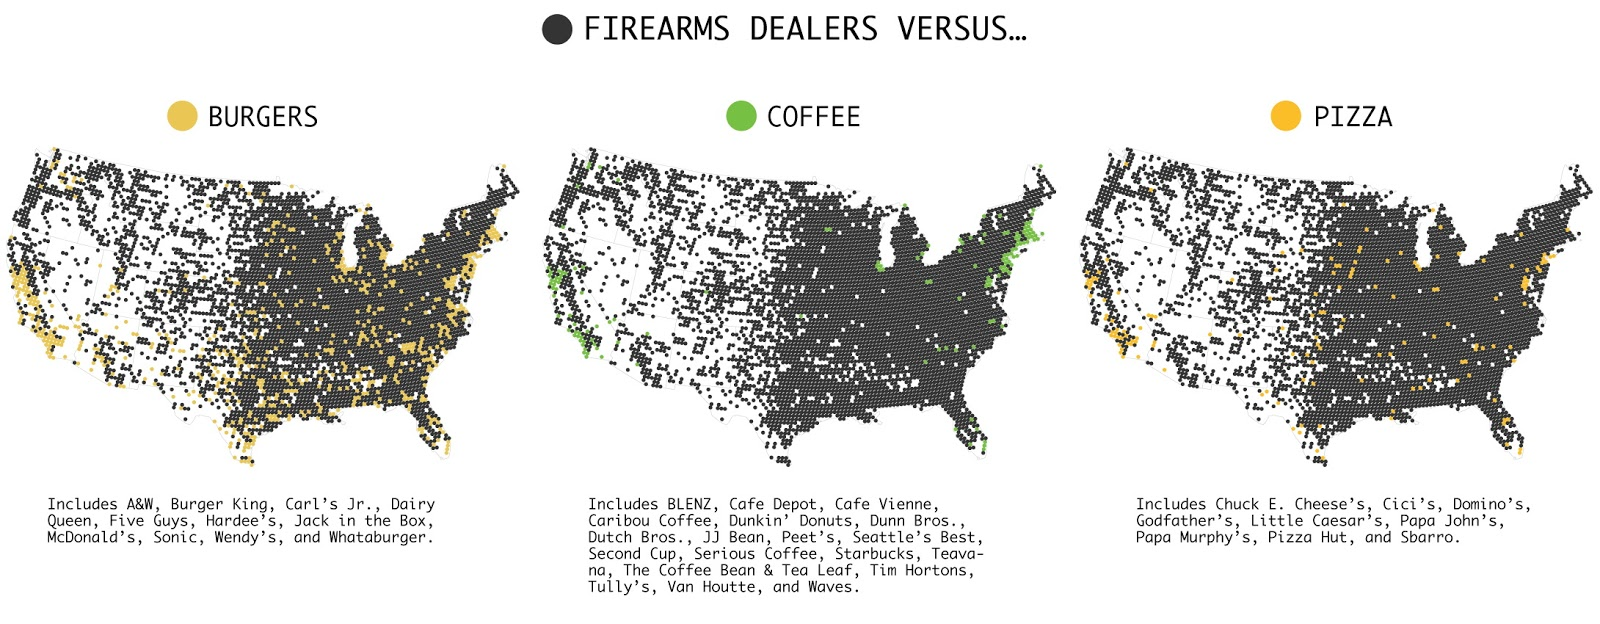 Firearms dealers vs Burgers, Coffee & Pizza